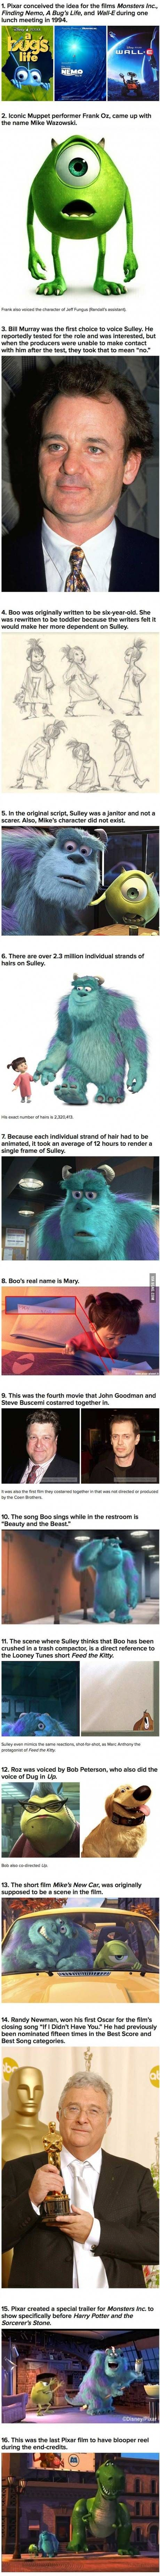 16 Monsters Inc. facts